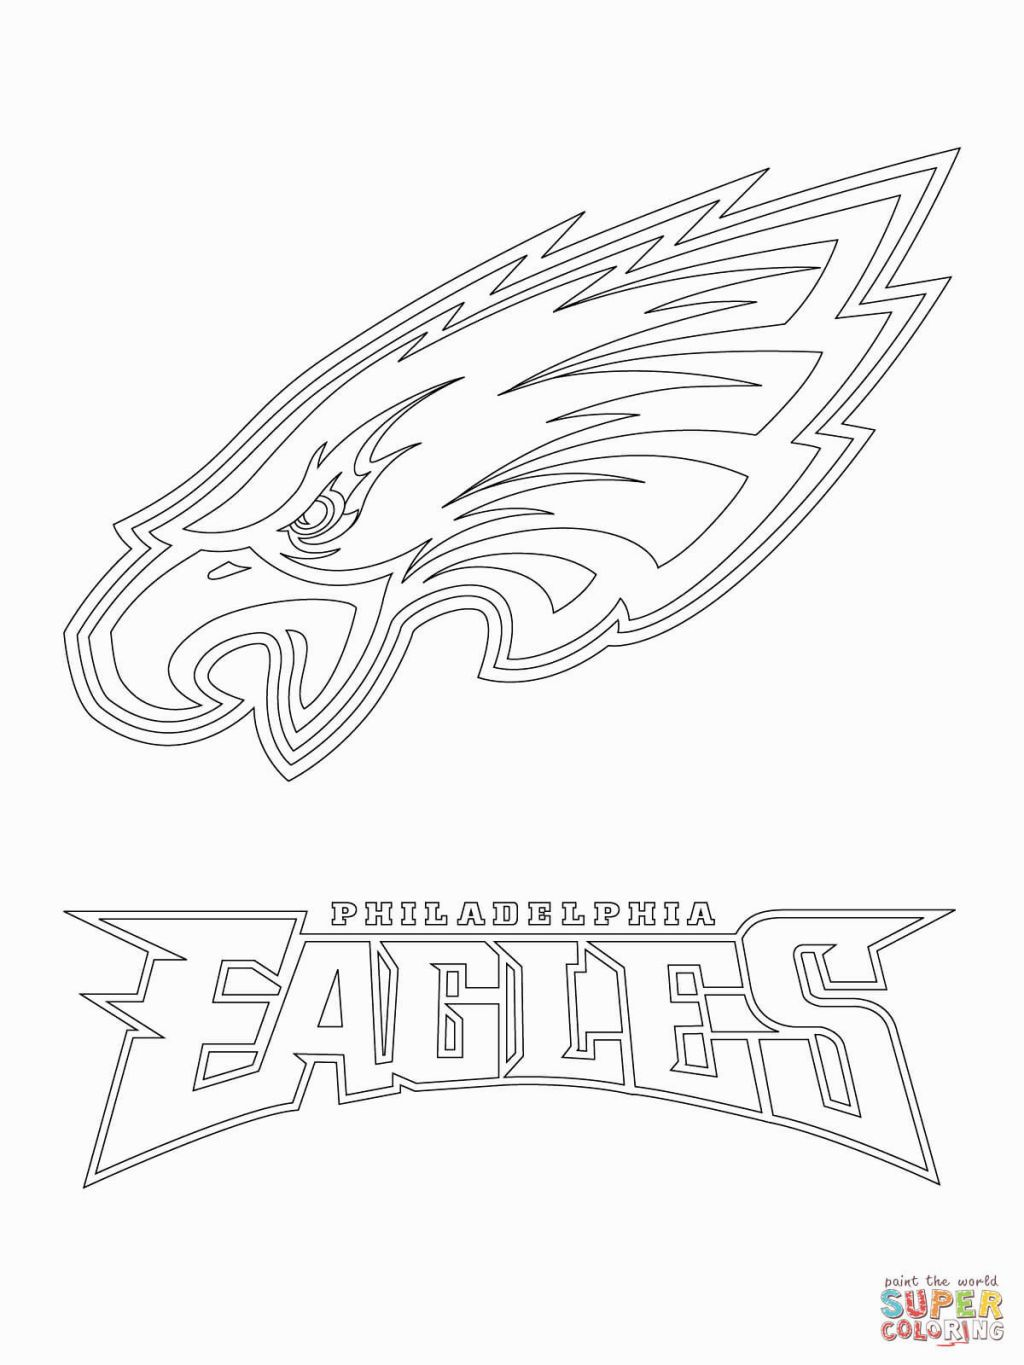 Philadelphia Eagles Coloring Pages Coloring Pages Philadelphia